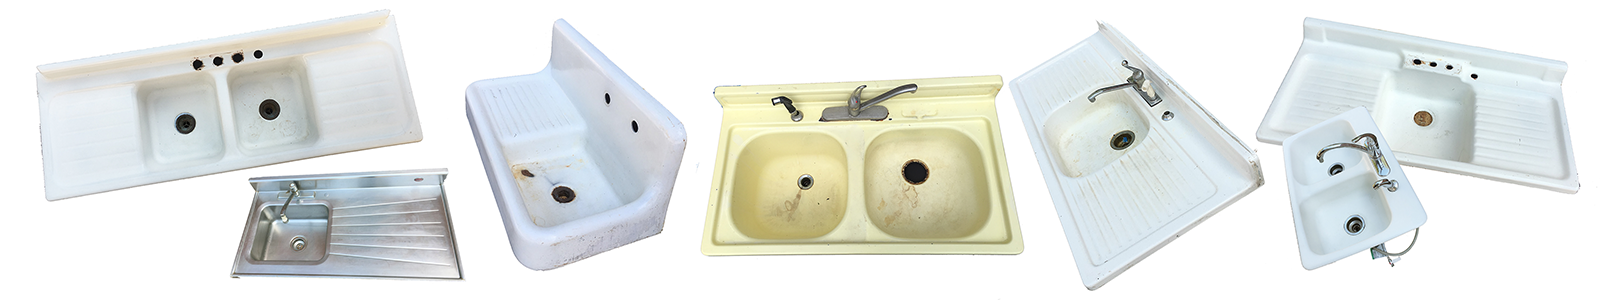 Antique Kitchen & Utility Sinks